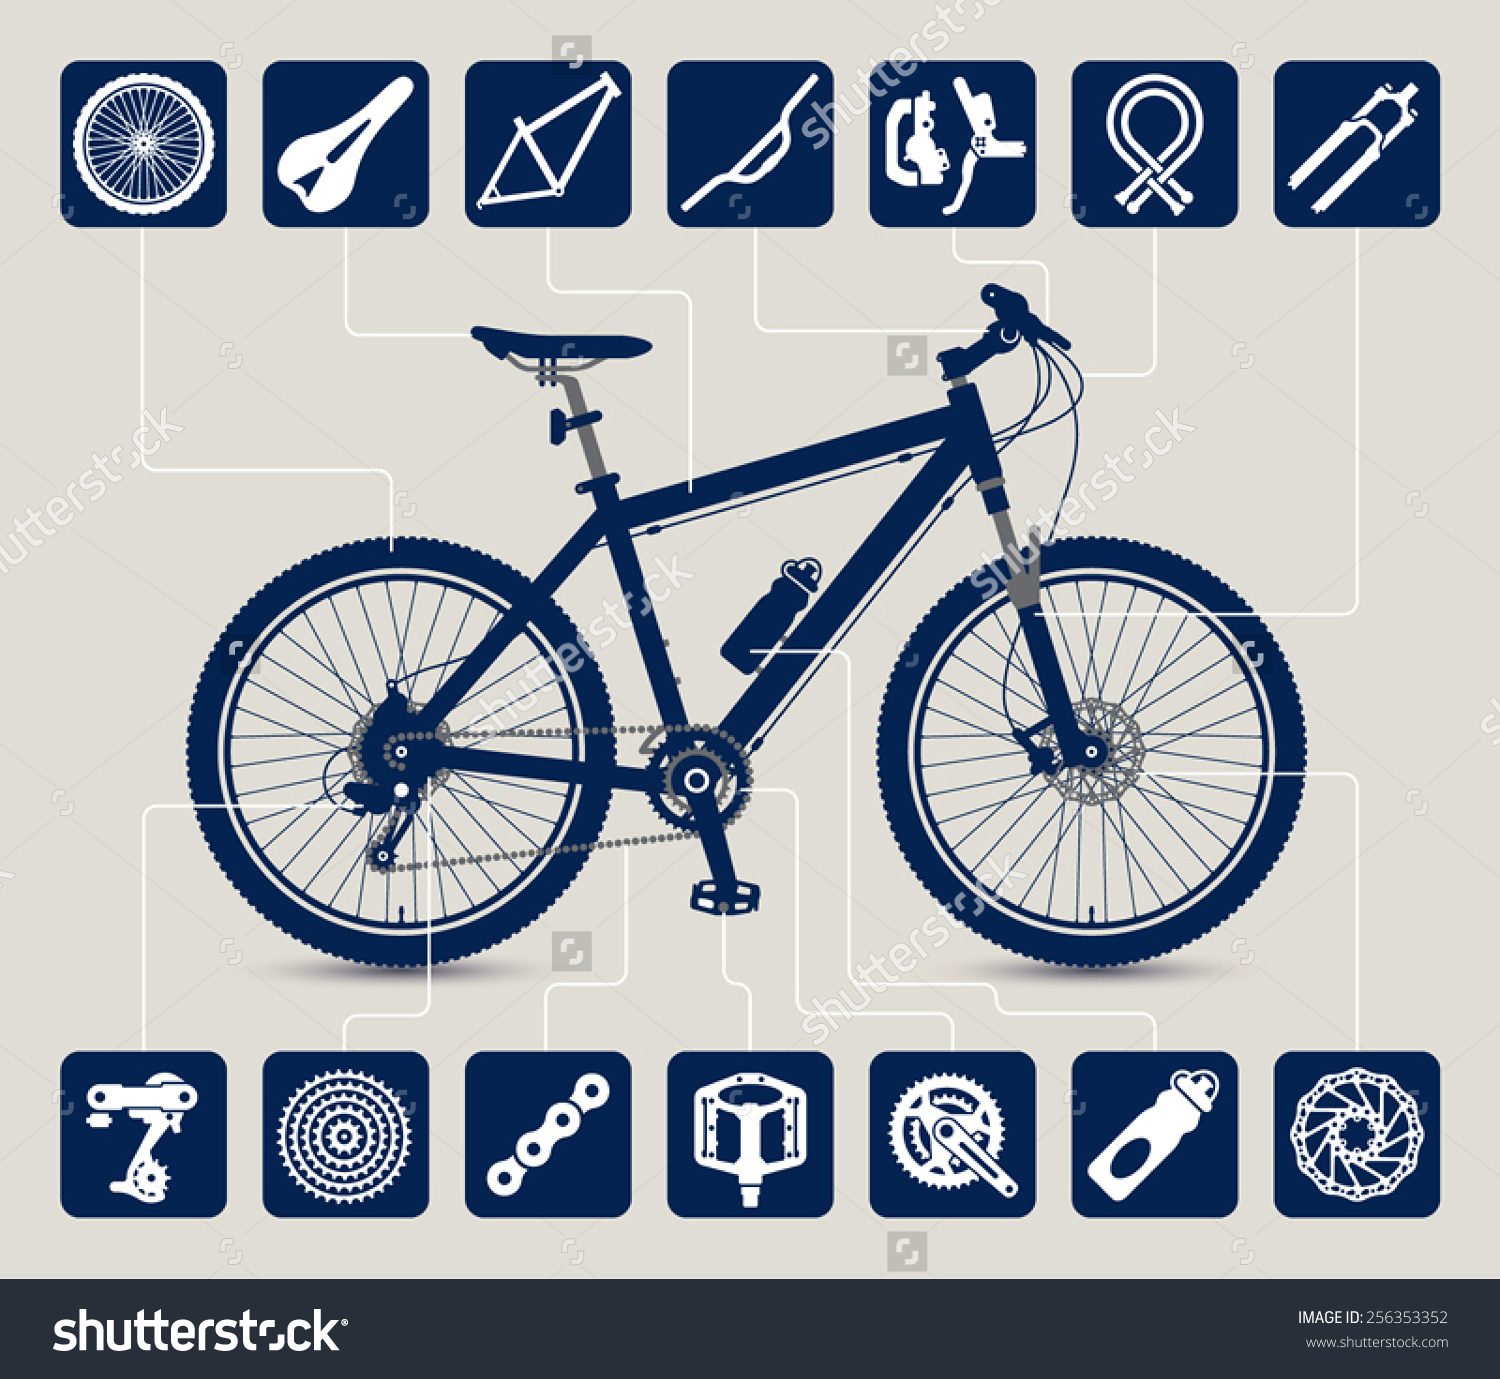 Mtb Bike High Detailed Silhouette Icons Stock Vector 256353352.